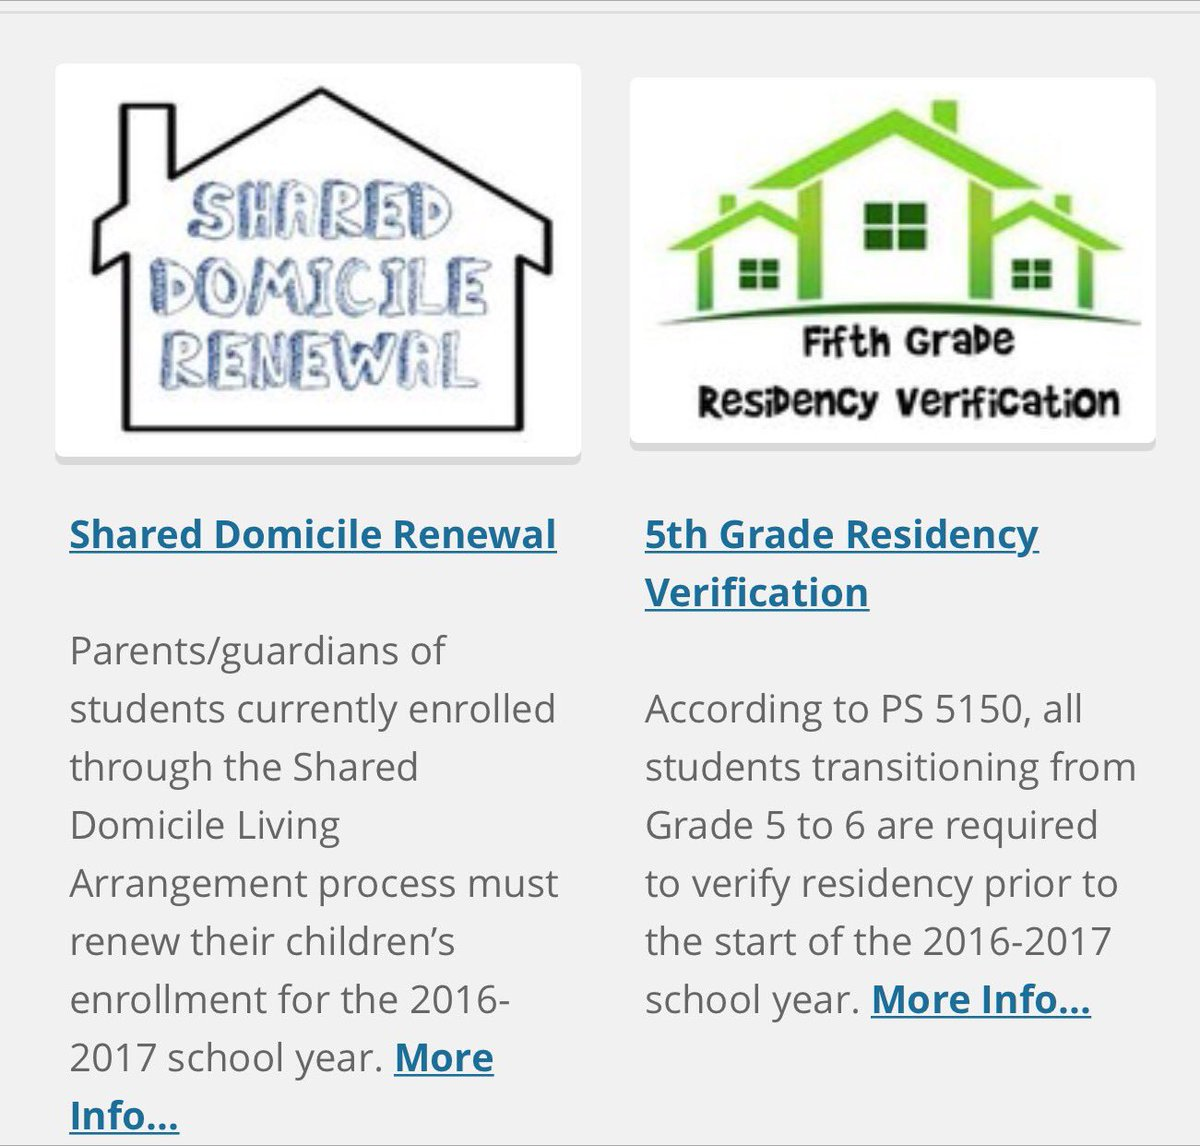 Suzanne Deweese On Twitter Renew Your Shared Domicile Complete